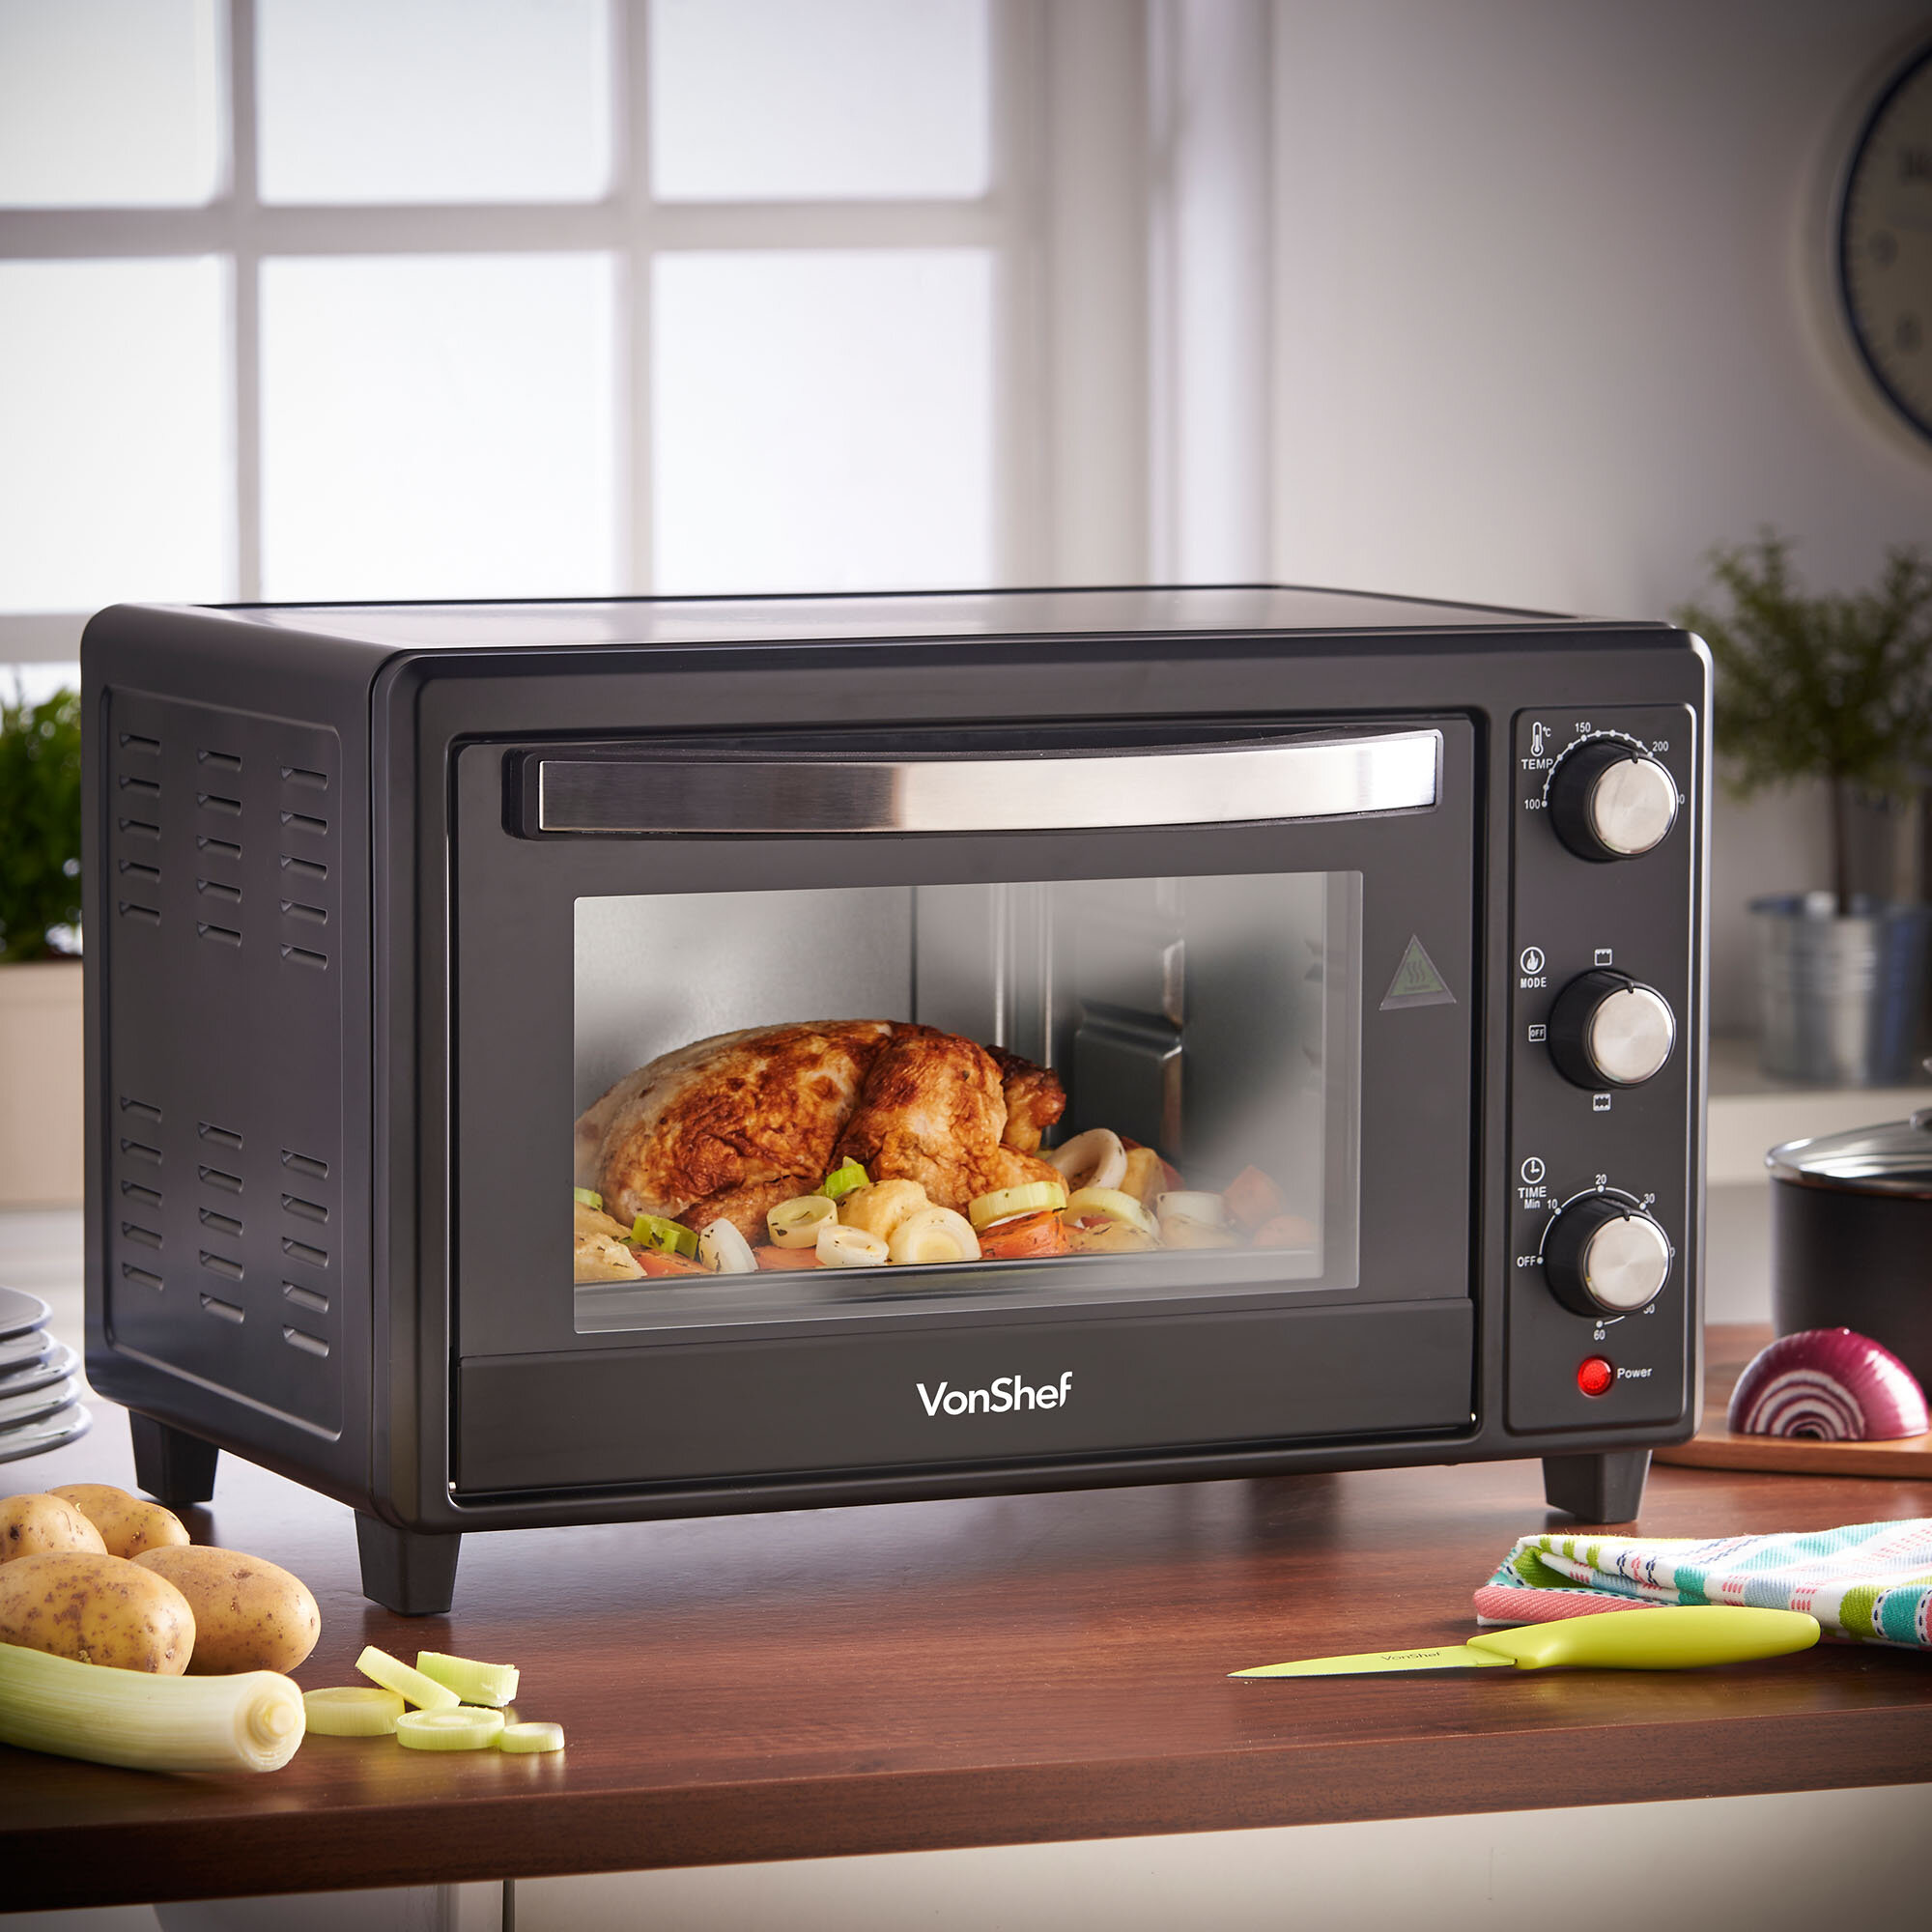 VonShef 0.87 Cu. Ft. Mini Countertop Toaster Mini Oven with Baking ...